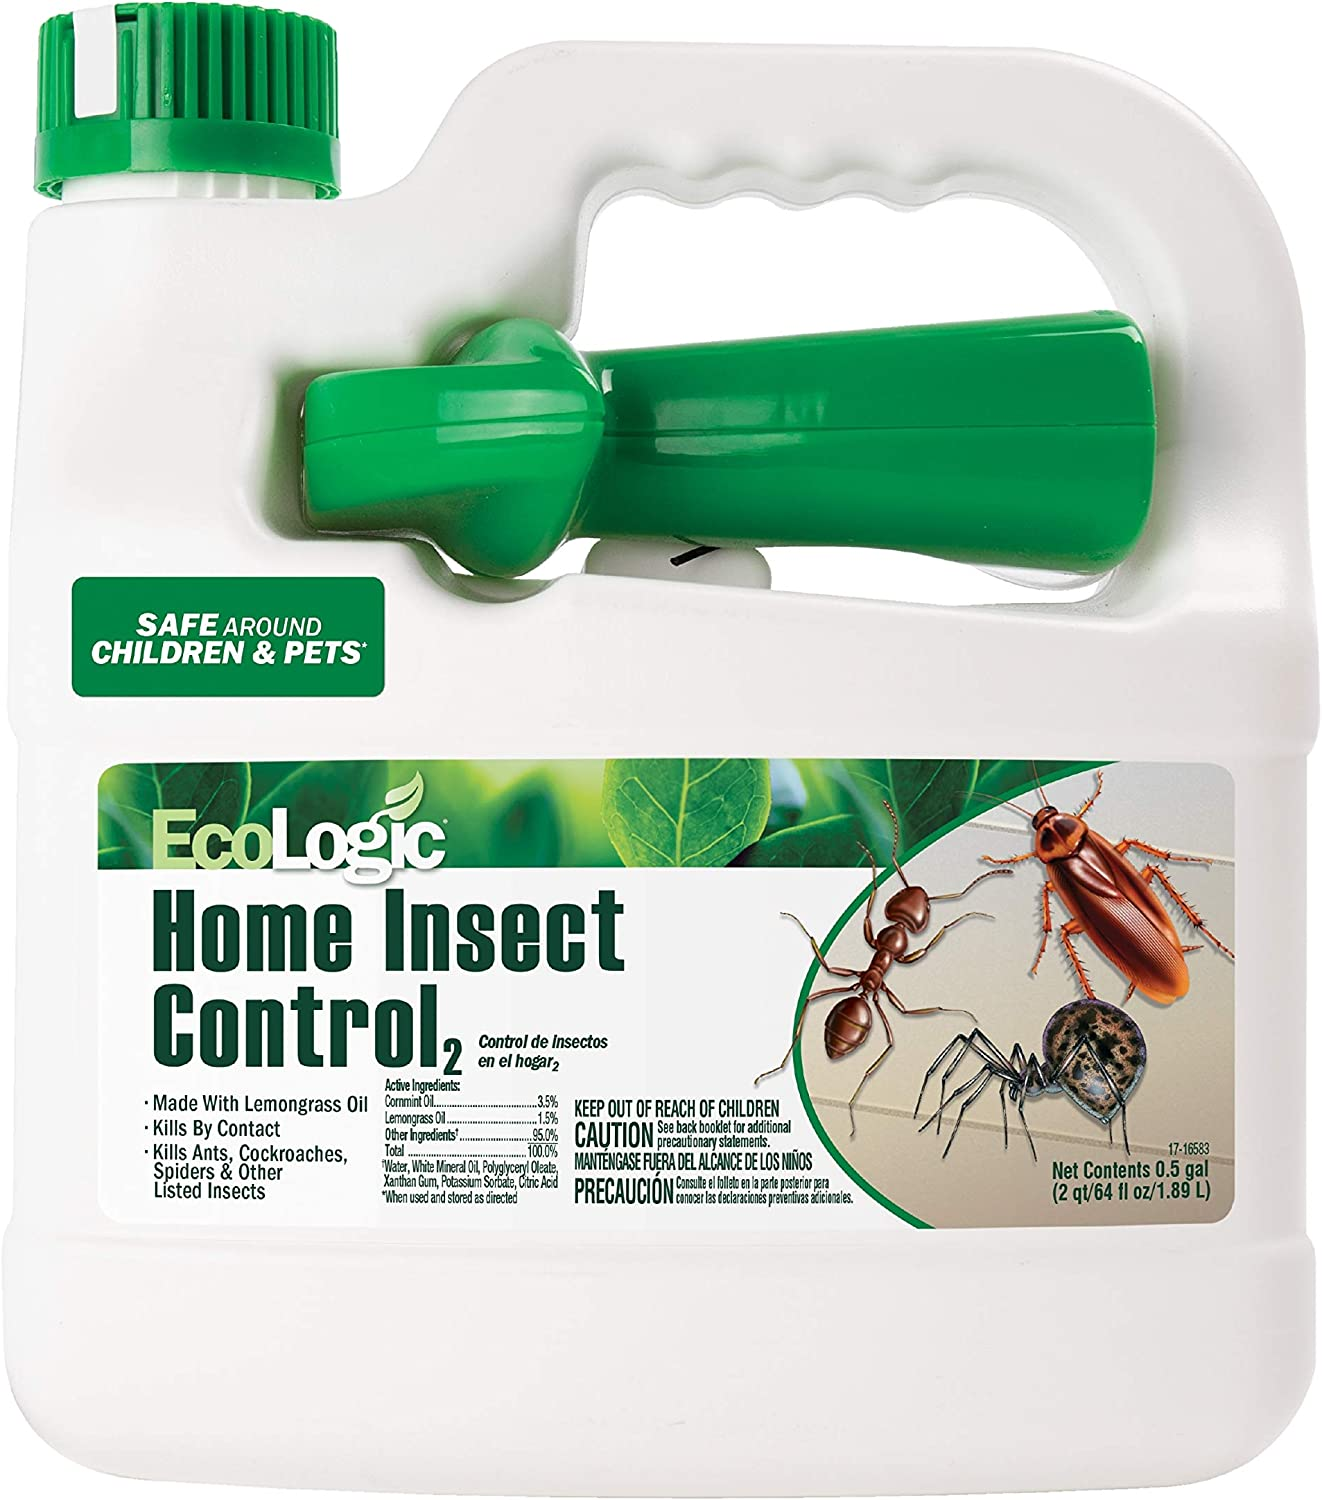 EcoLogic HG-75026 Home Insect Control, 64fl oz, Kills Ants, Spiders, More